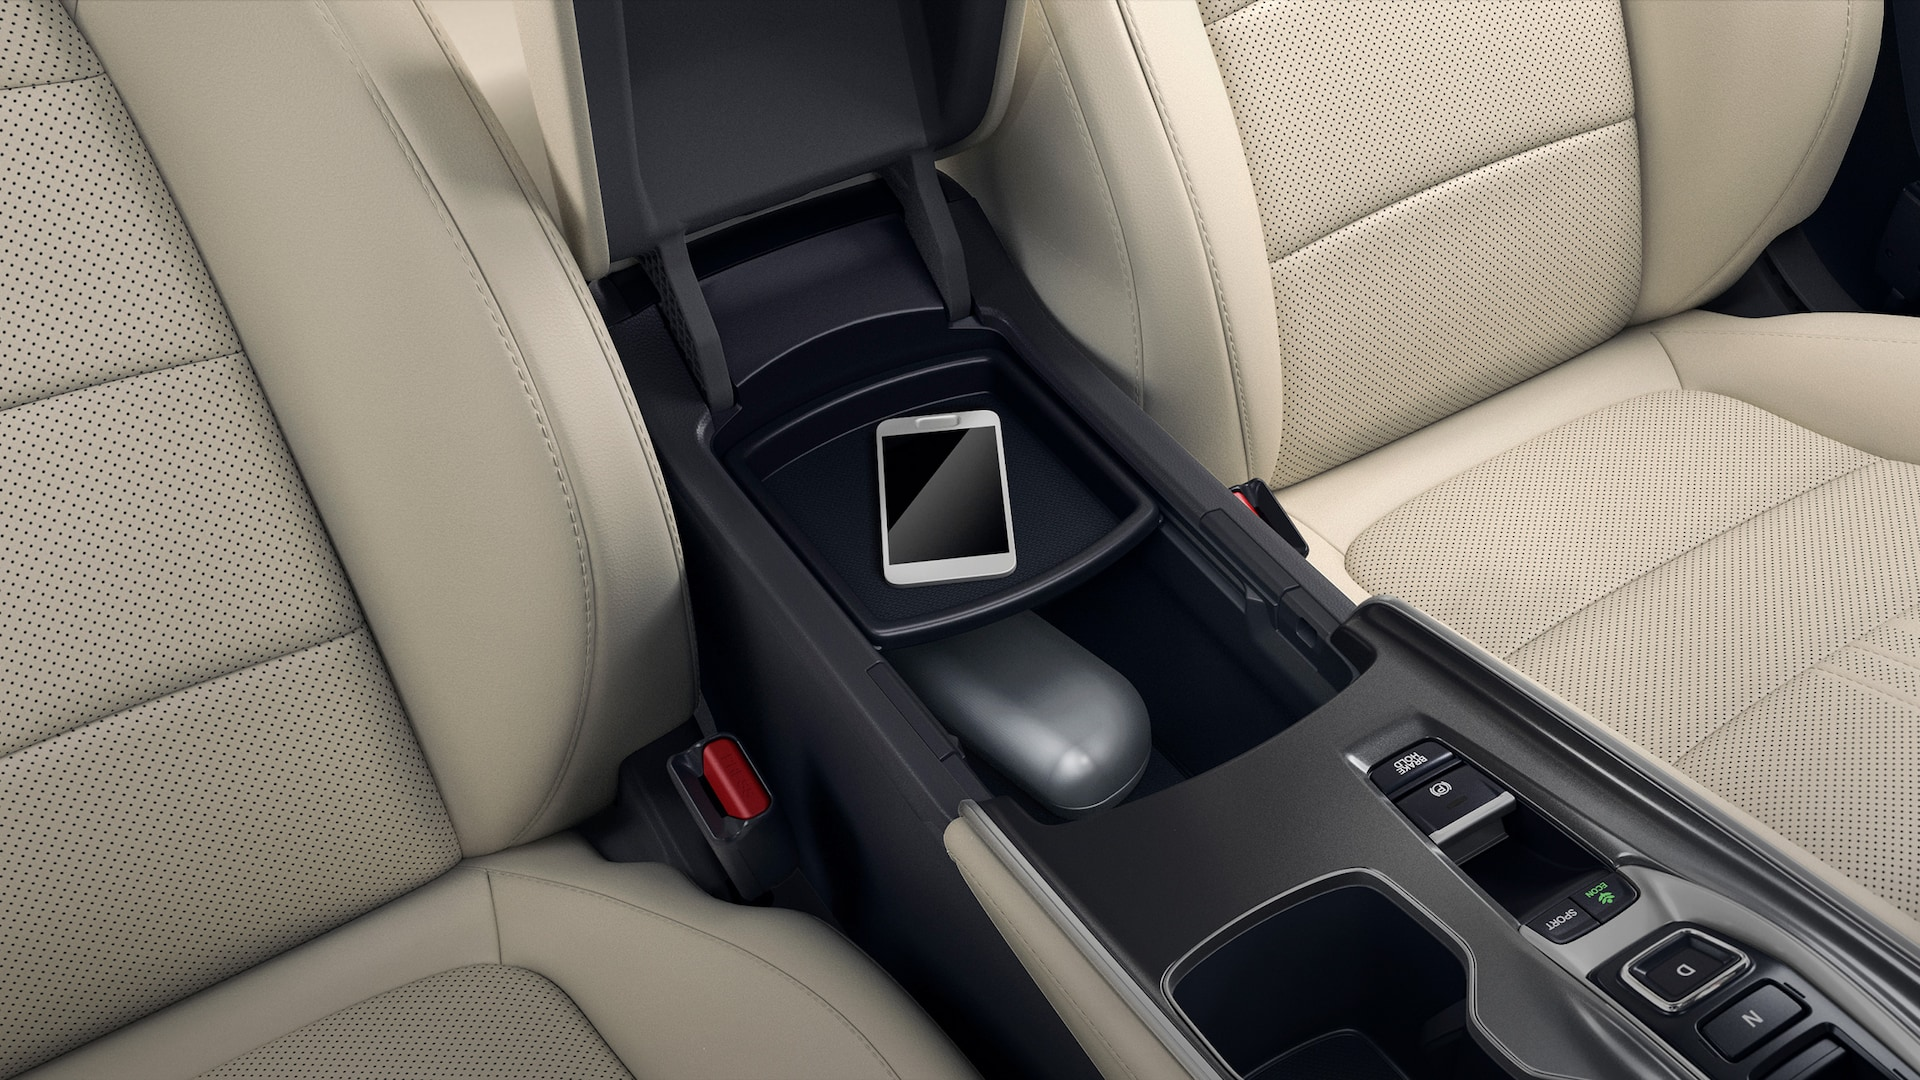 Center console storage compartment detail in the 2021 Honda Accord Touring 2.0T.